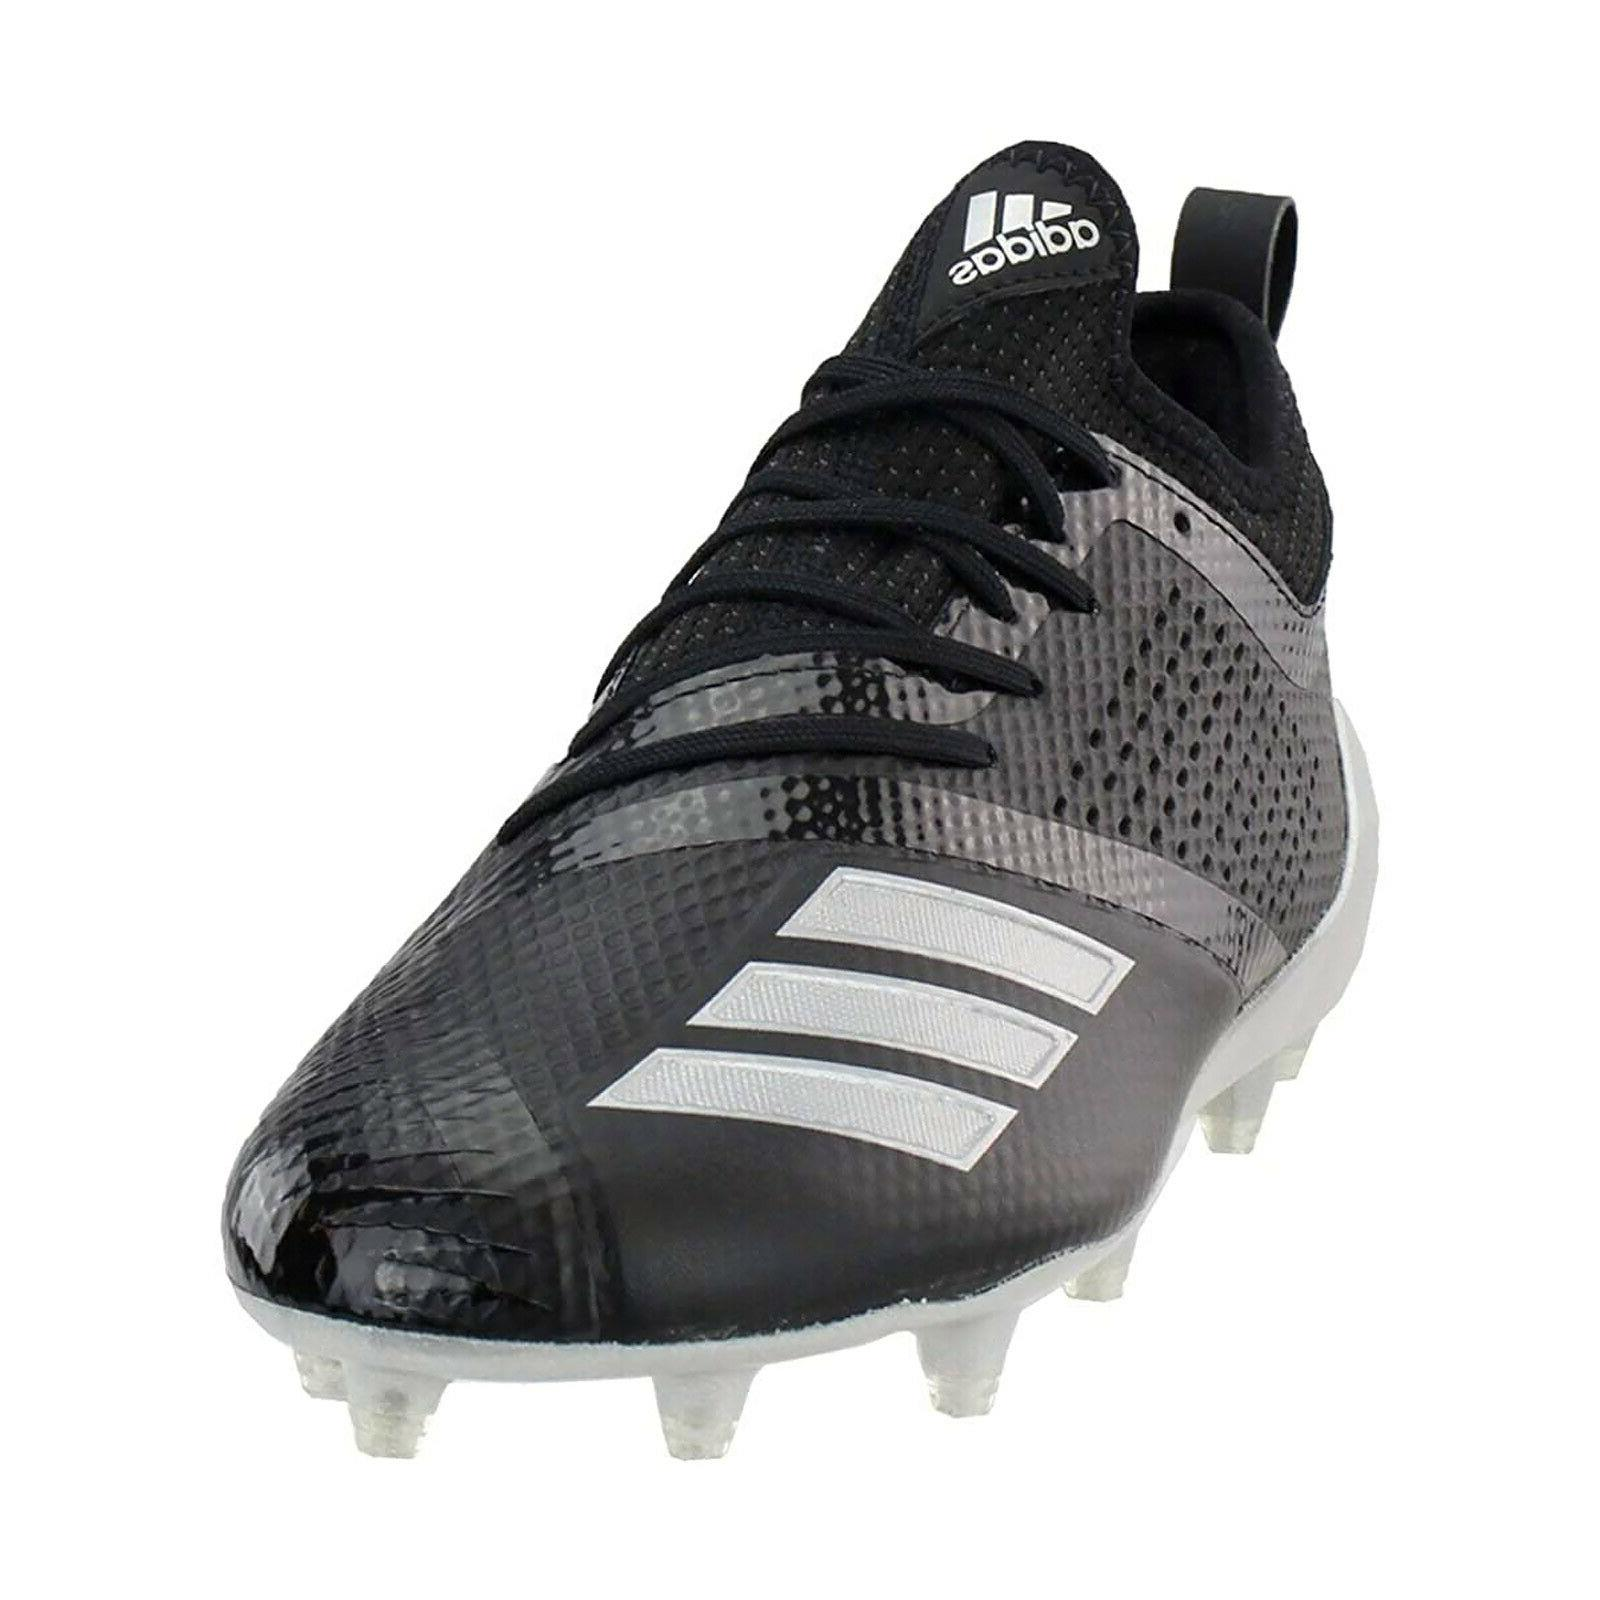 ADIDAS ADIZERO 7.0 LOW Cleats Football Black, SIZE